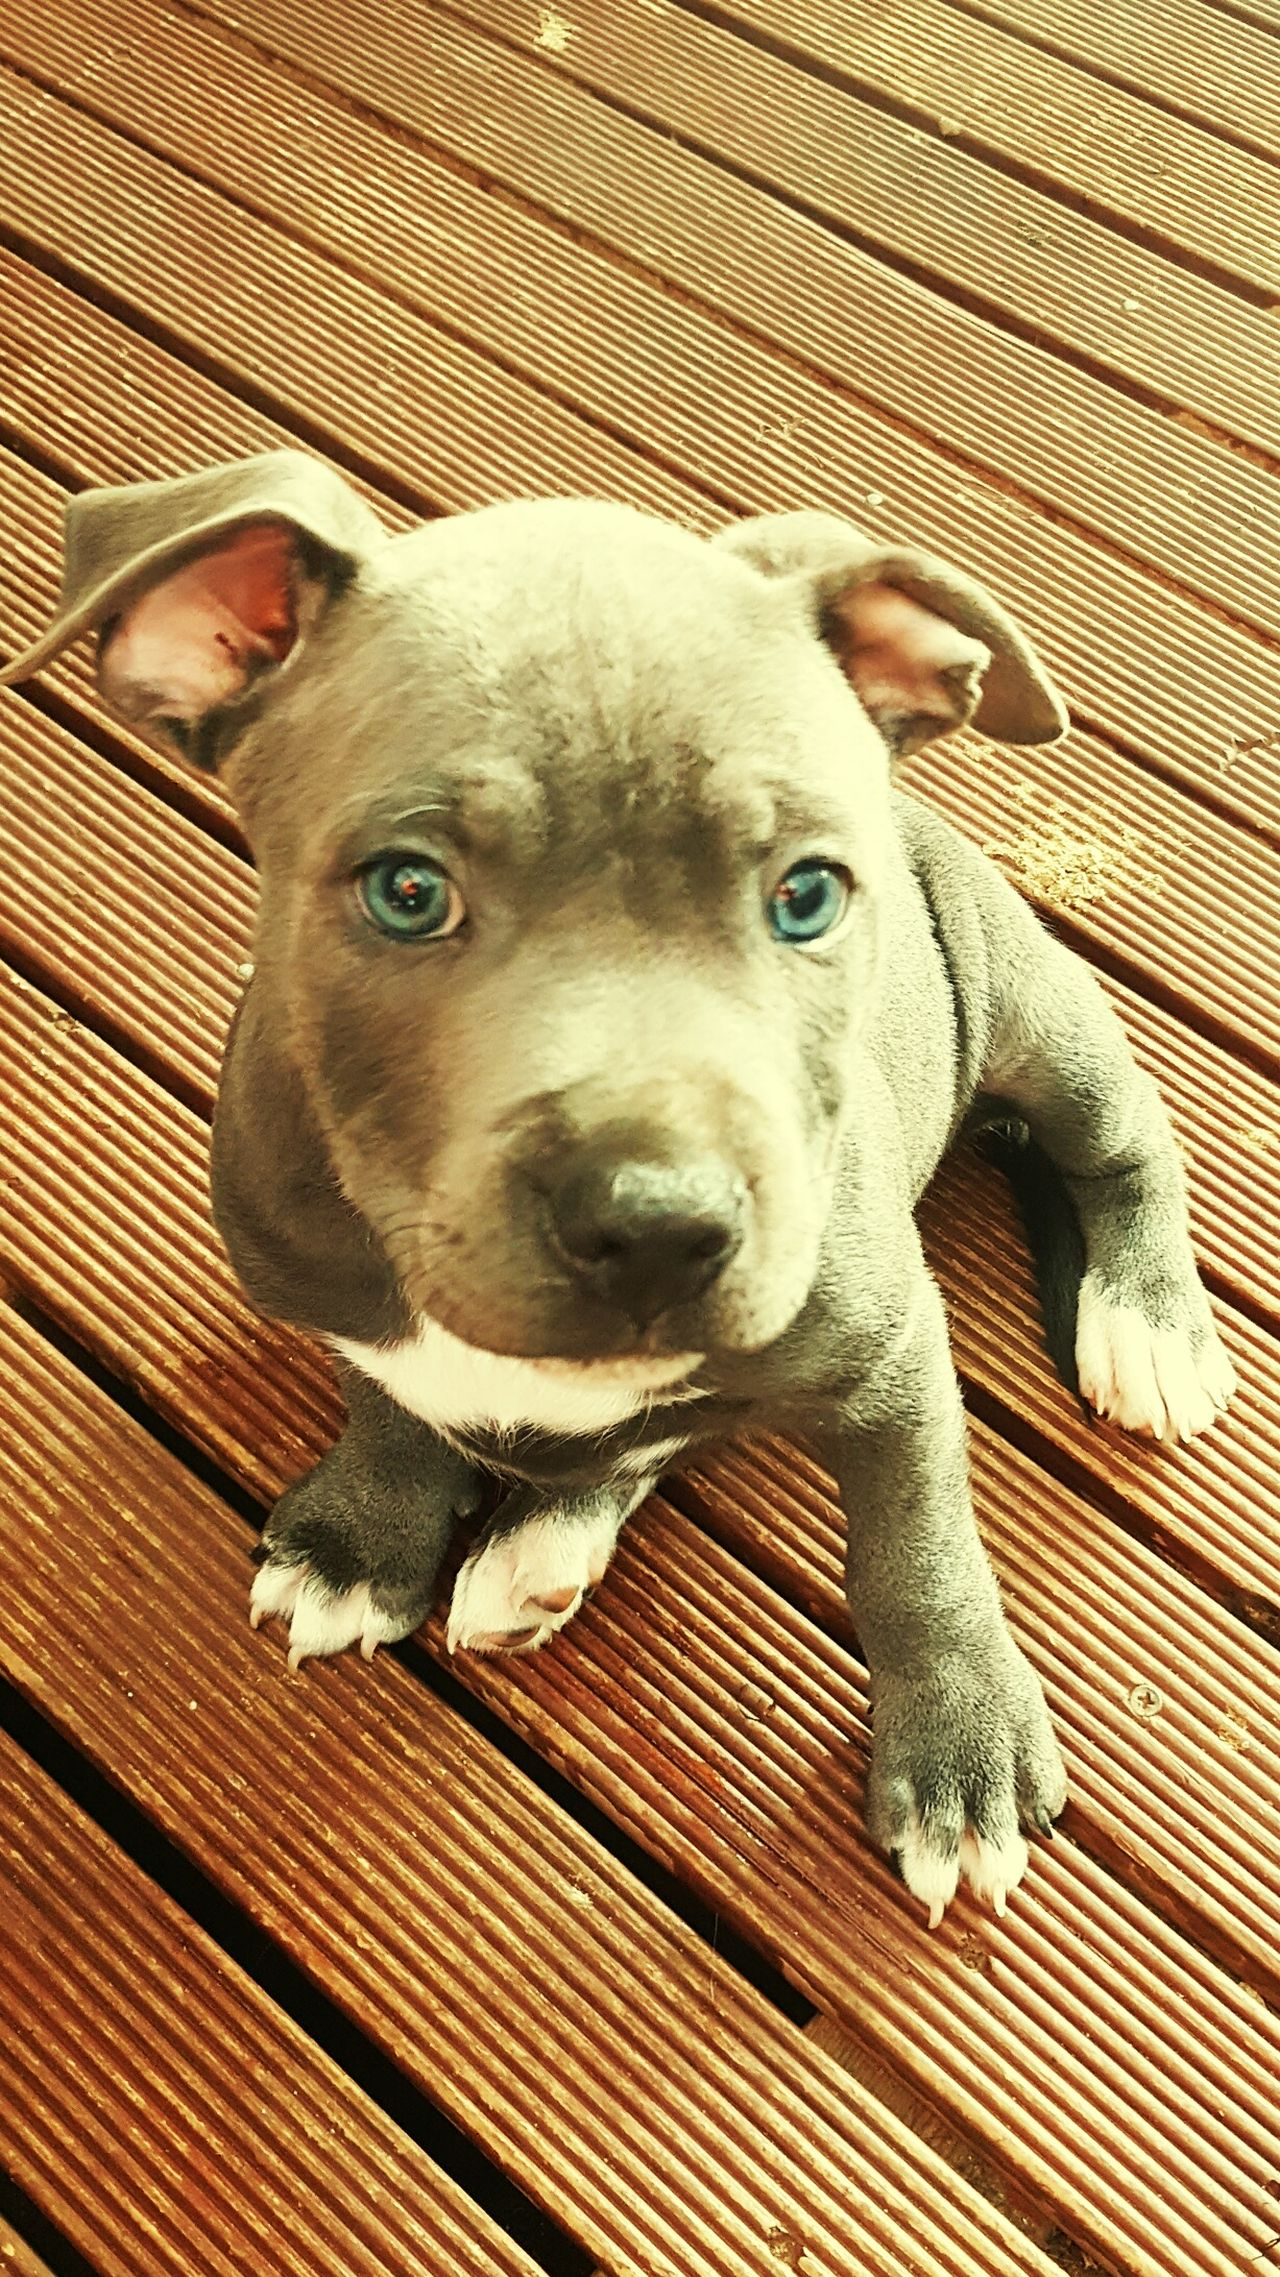 My baby blue English staffy One Animal Close-up Portrait Outdoors Day No People High Angle View Looking At Camera Dog Staffylove Staffordshire Bull Terrier Staffysmile Mammal Animal Themes Domestic Animals Pets